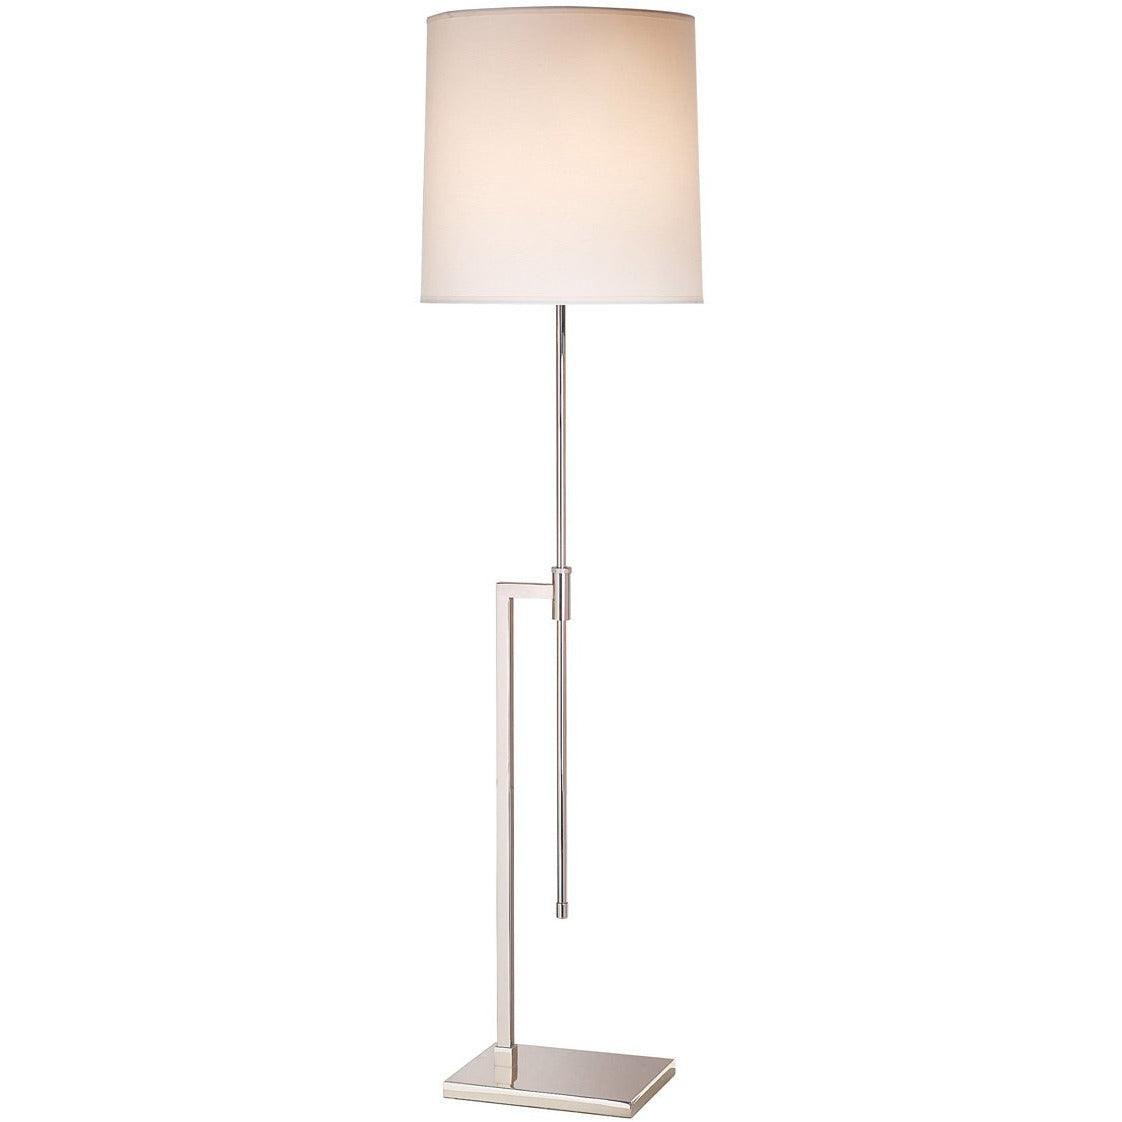 Sonneman - A Way of Light - 7008.35 - One Light Floor Lamp - Palo - Polished Nickel